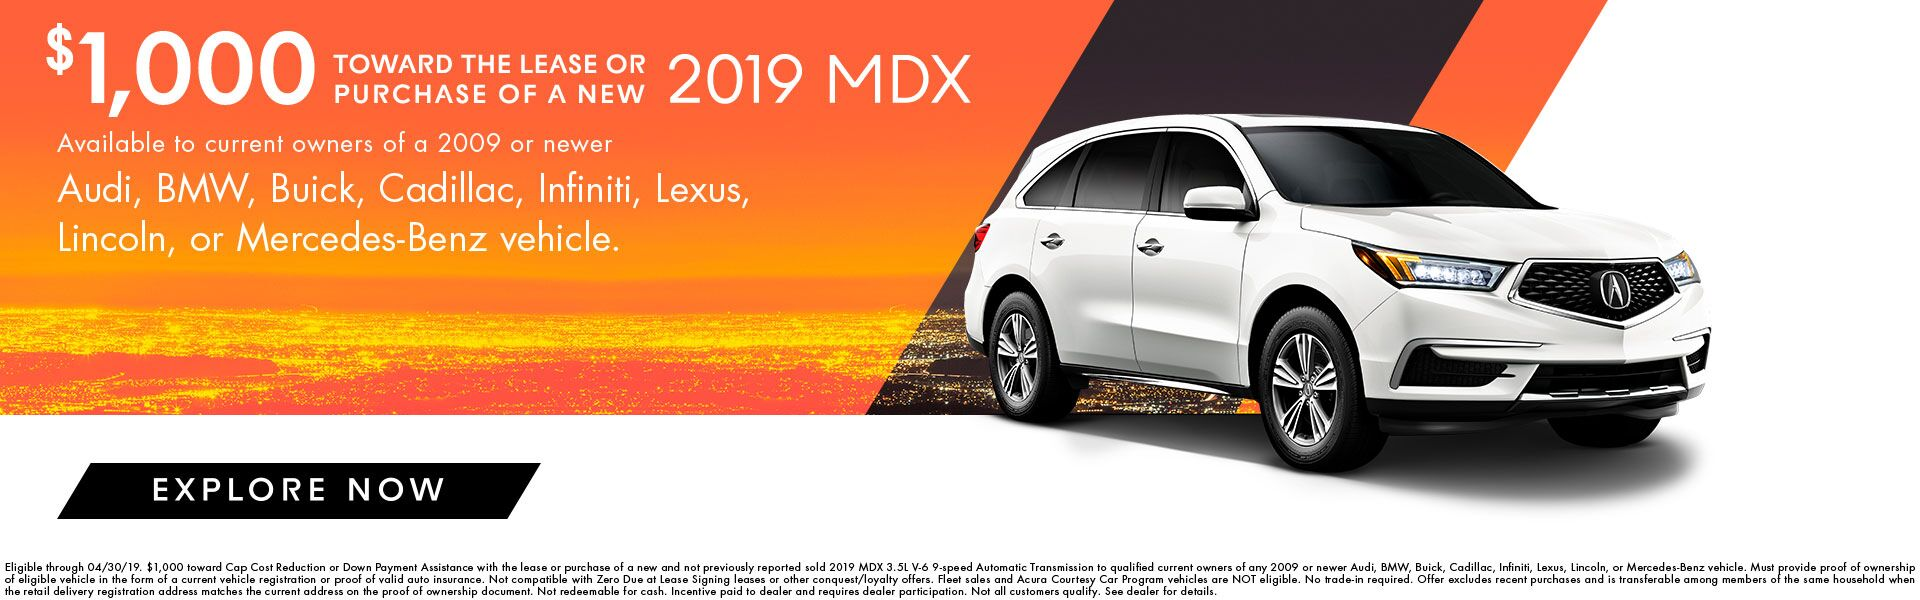 2019 MDX Incentives at Acura of Seattle